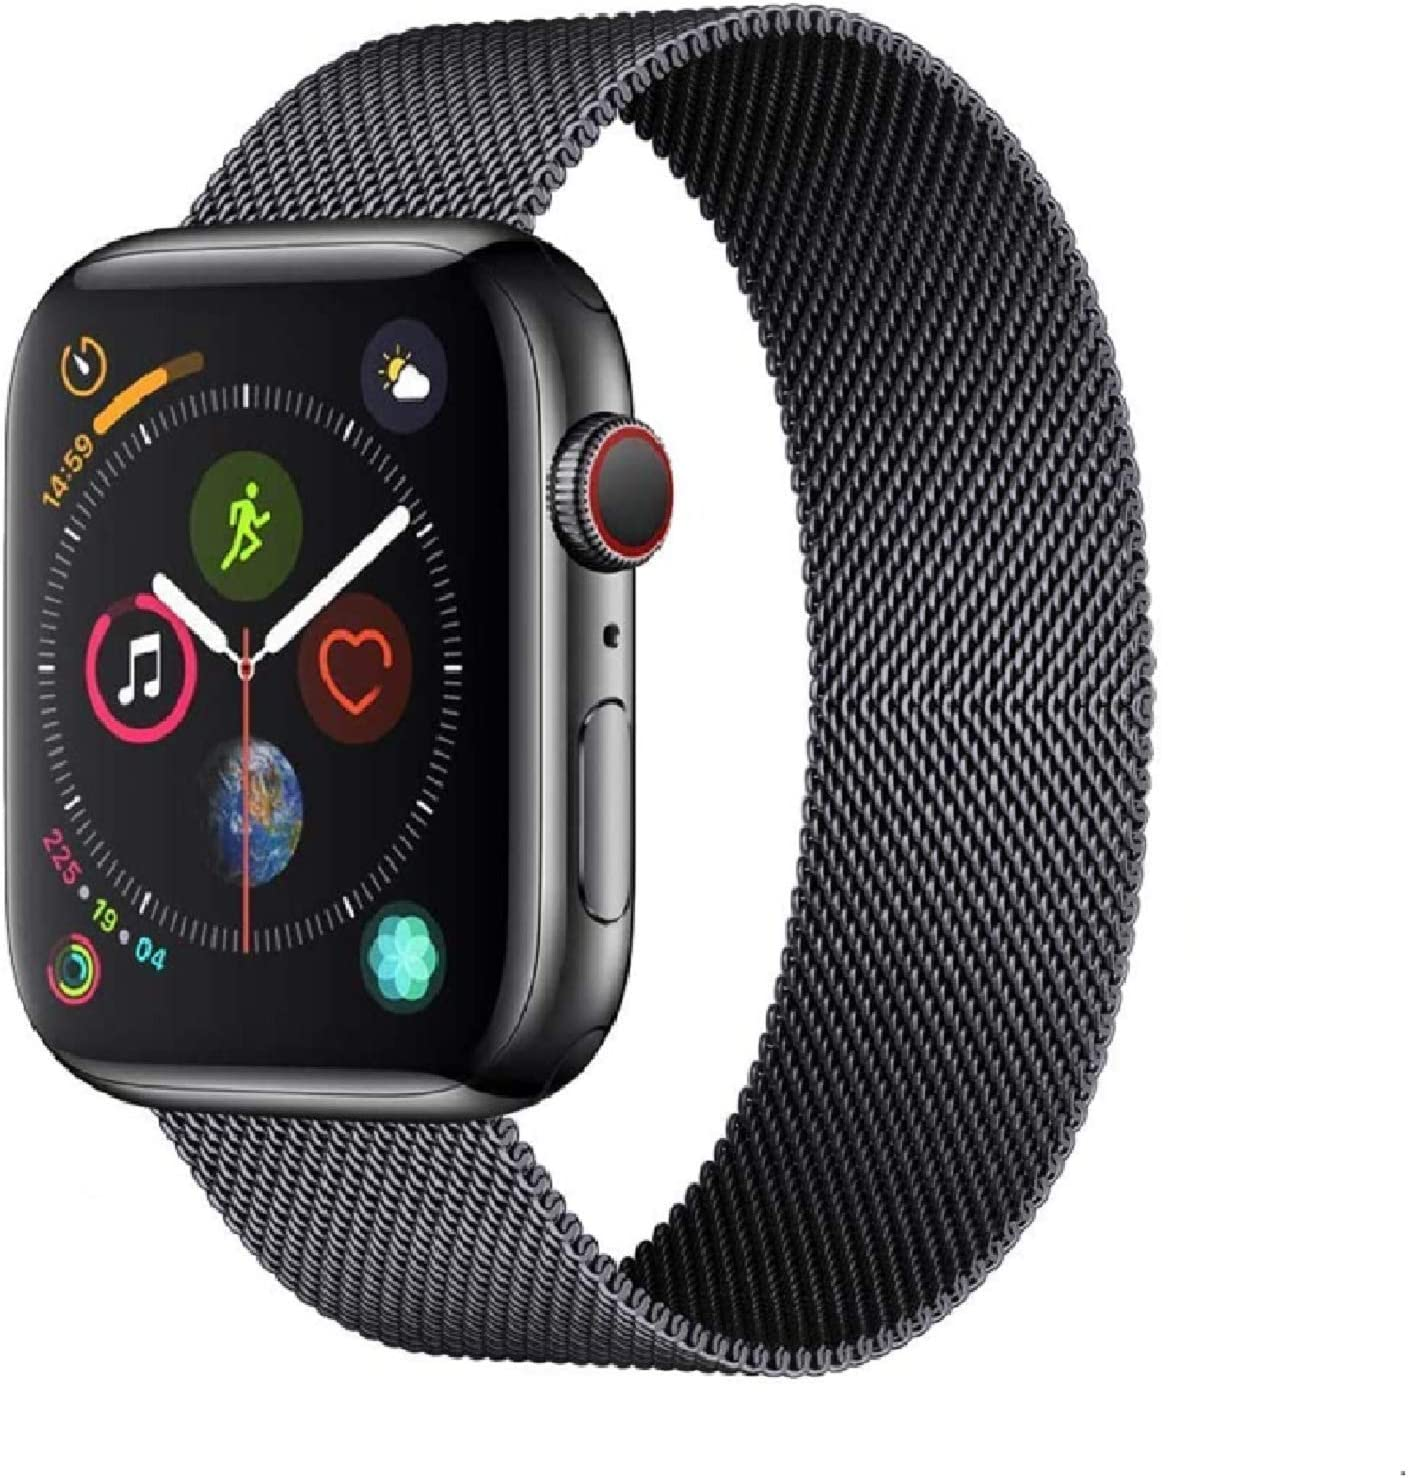 MFF Compatible for Apple Watch Band 38mm 42mm 40mm 44mm, Wristband Strap Replacement Band Compatible with iWatch Series 6 5 4 3 2 1 SE